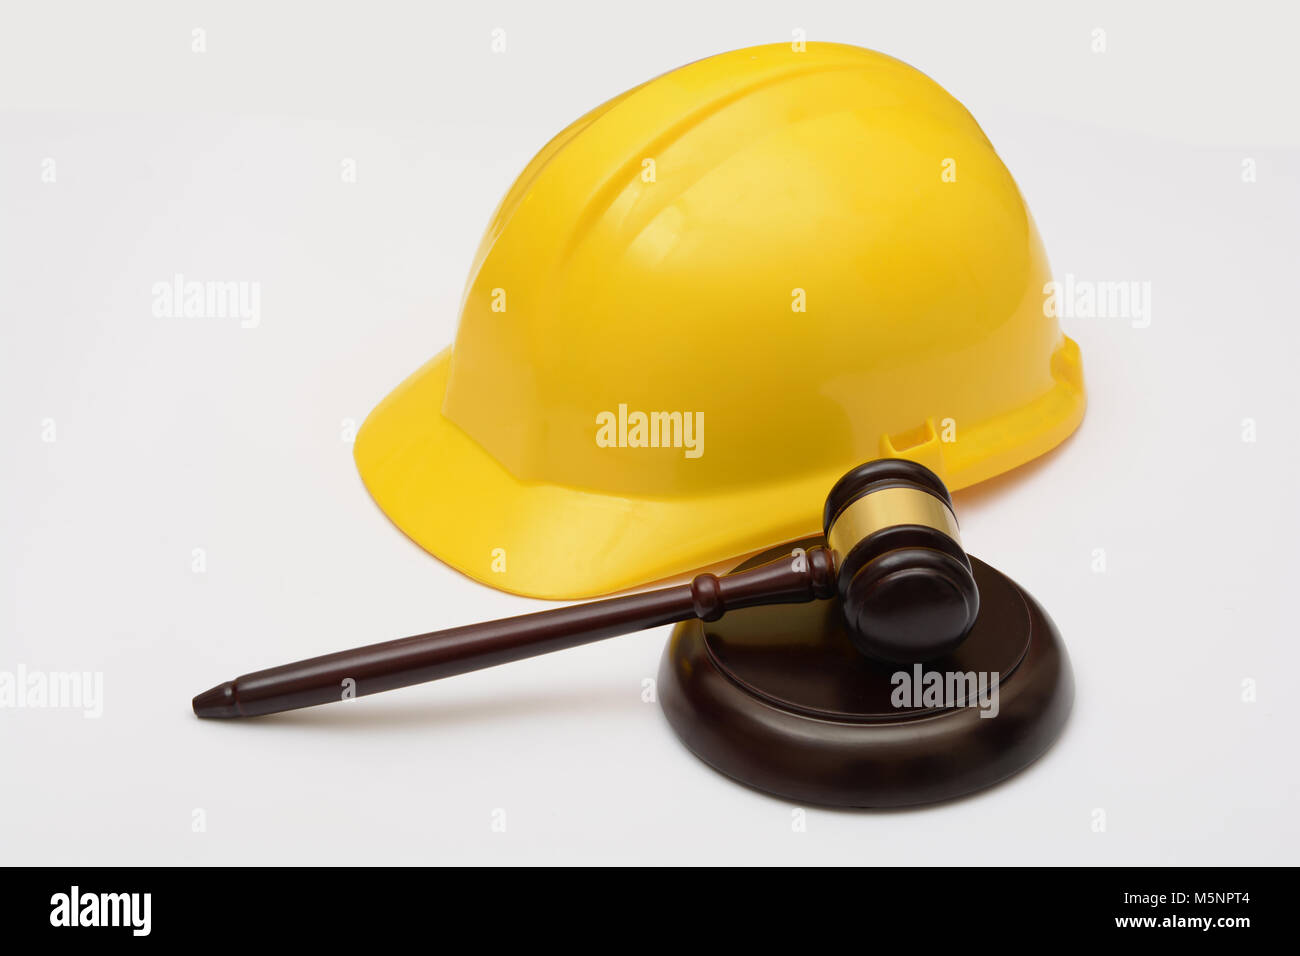 Labor Safety Labor Law With Safety Helmet And Gavel Stock Photo 175655876 Alamy